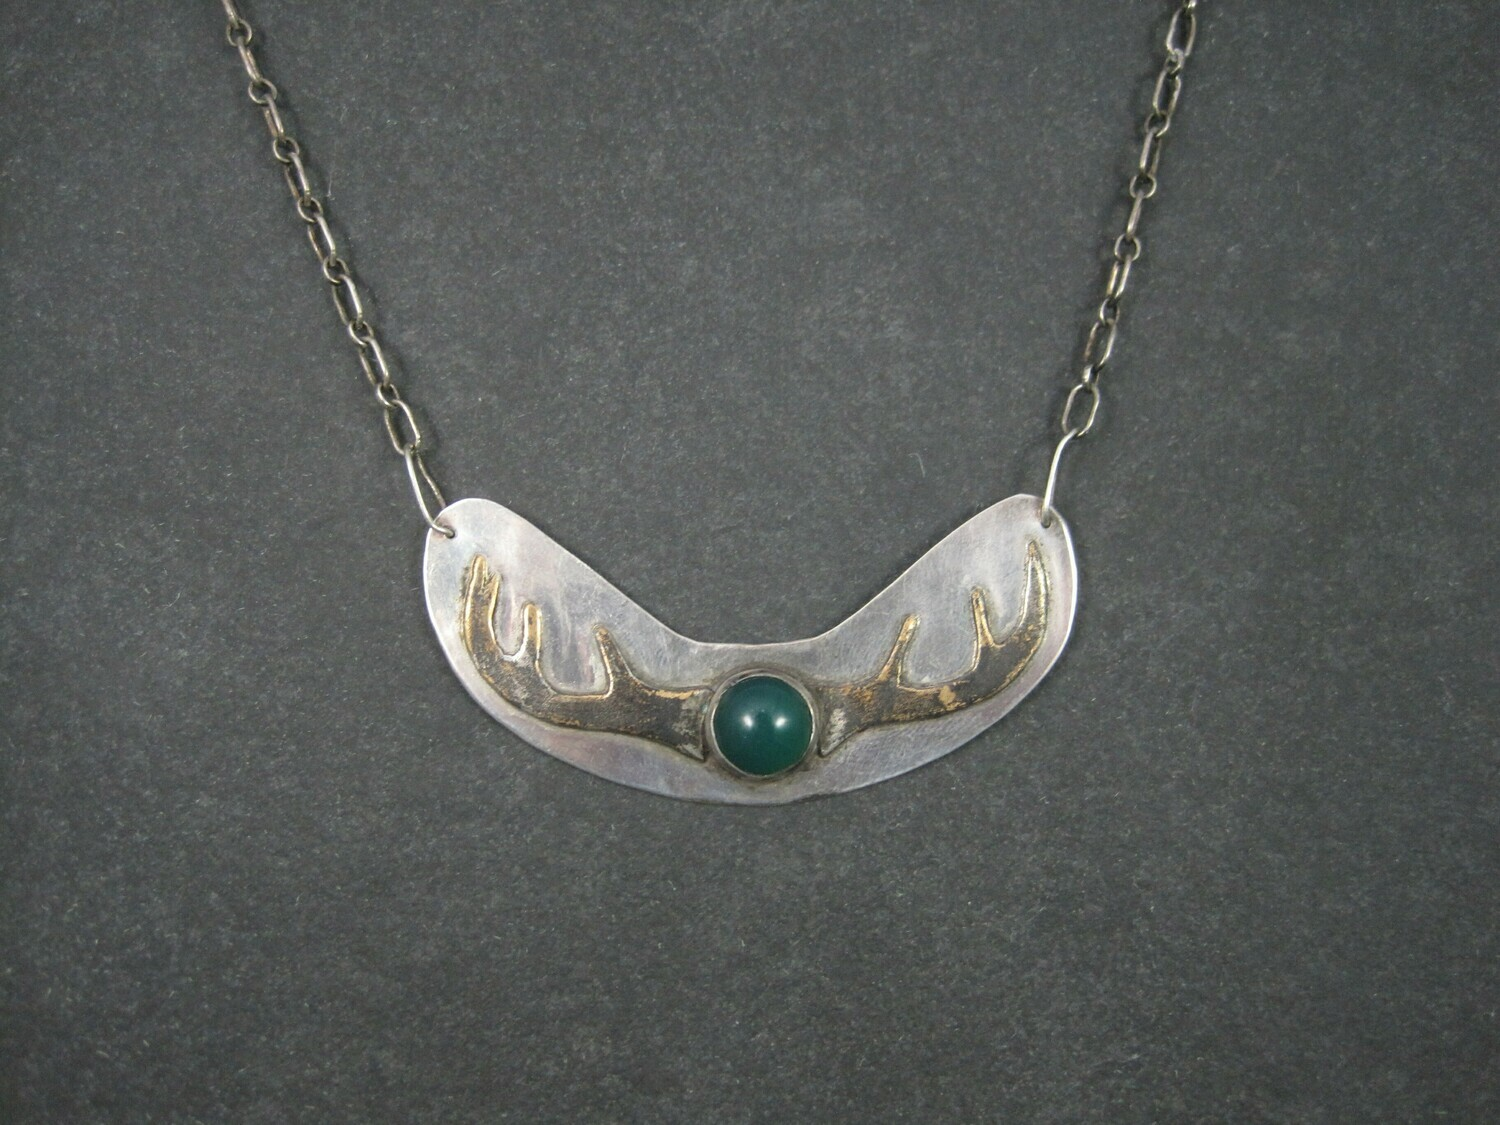 Vintage Sterling Chrysoprase Deer Antler Necklace 27 Inches